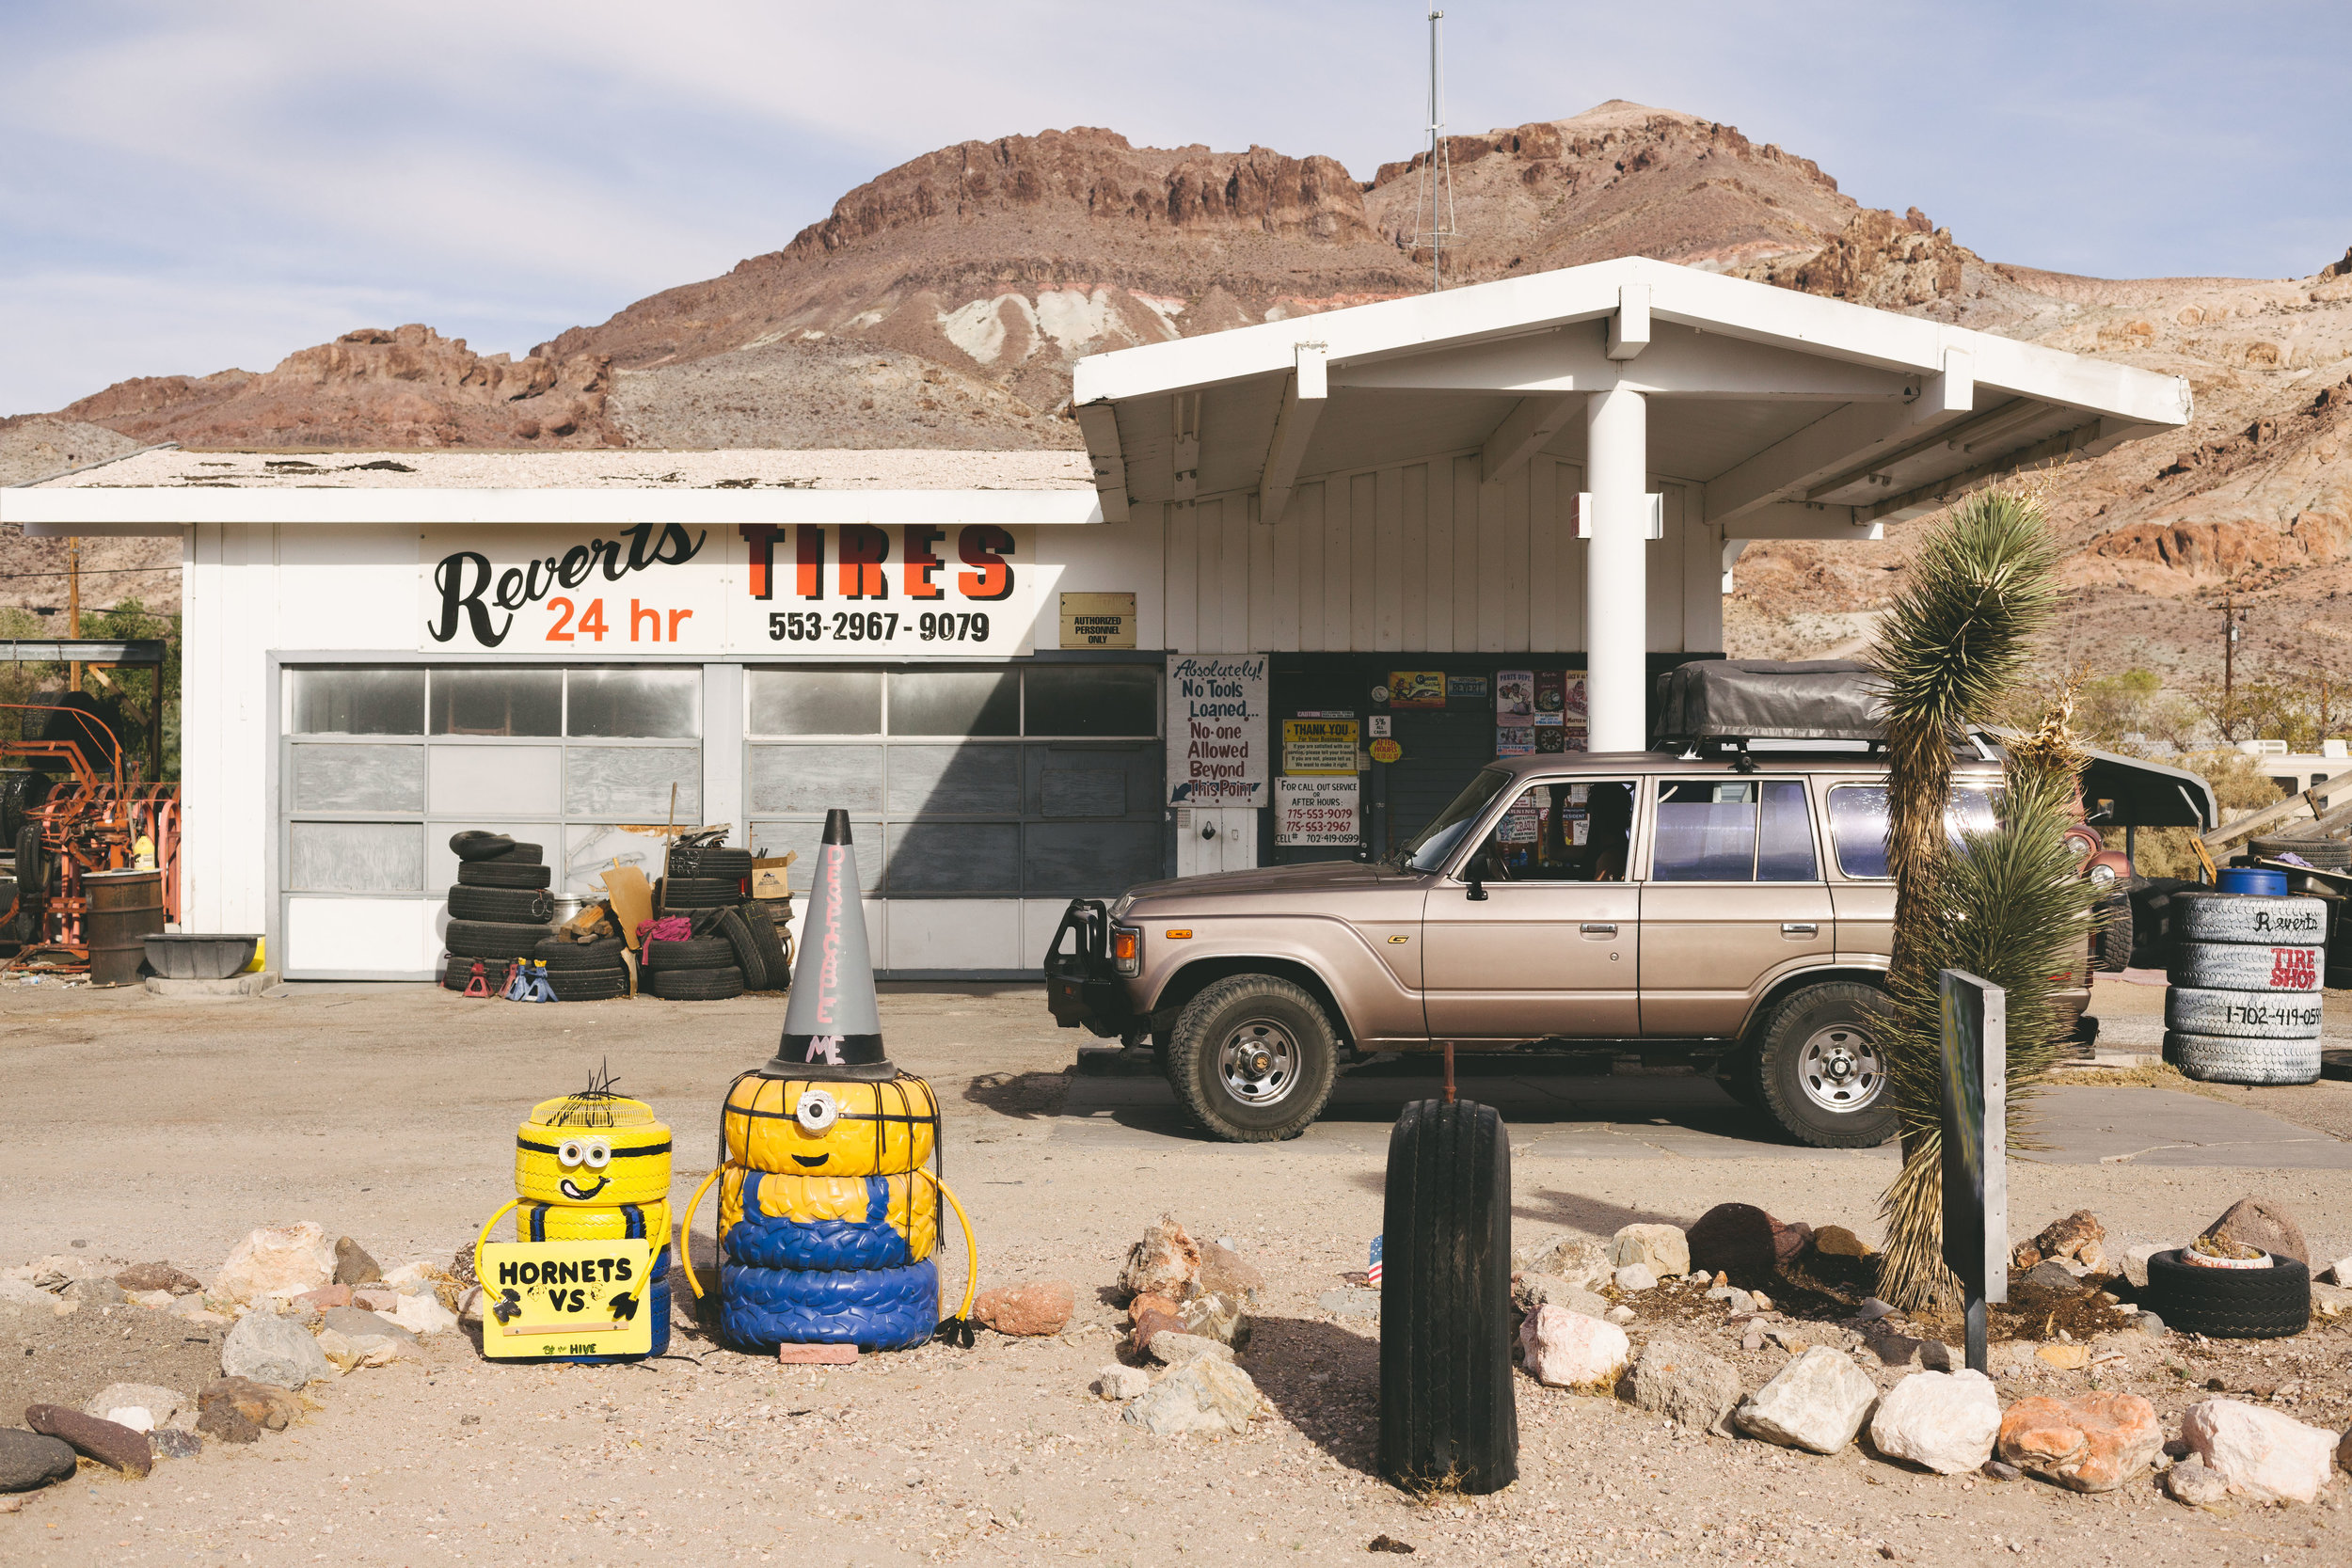 Stopped at a lot of funny gas stations and weird americana, this was one of my favourites in the middle of the desert.